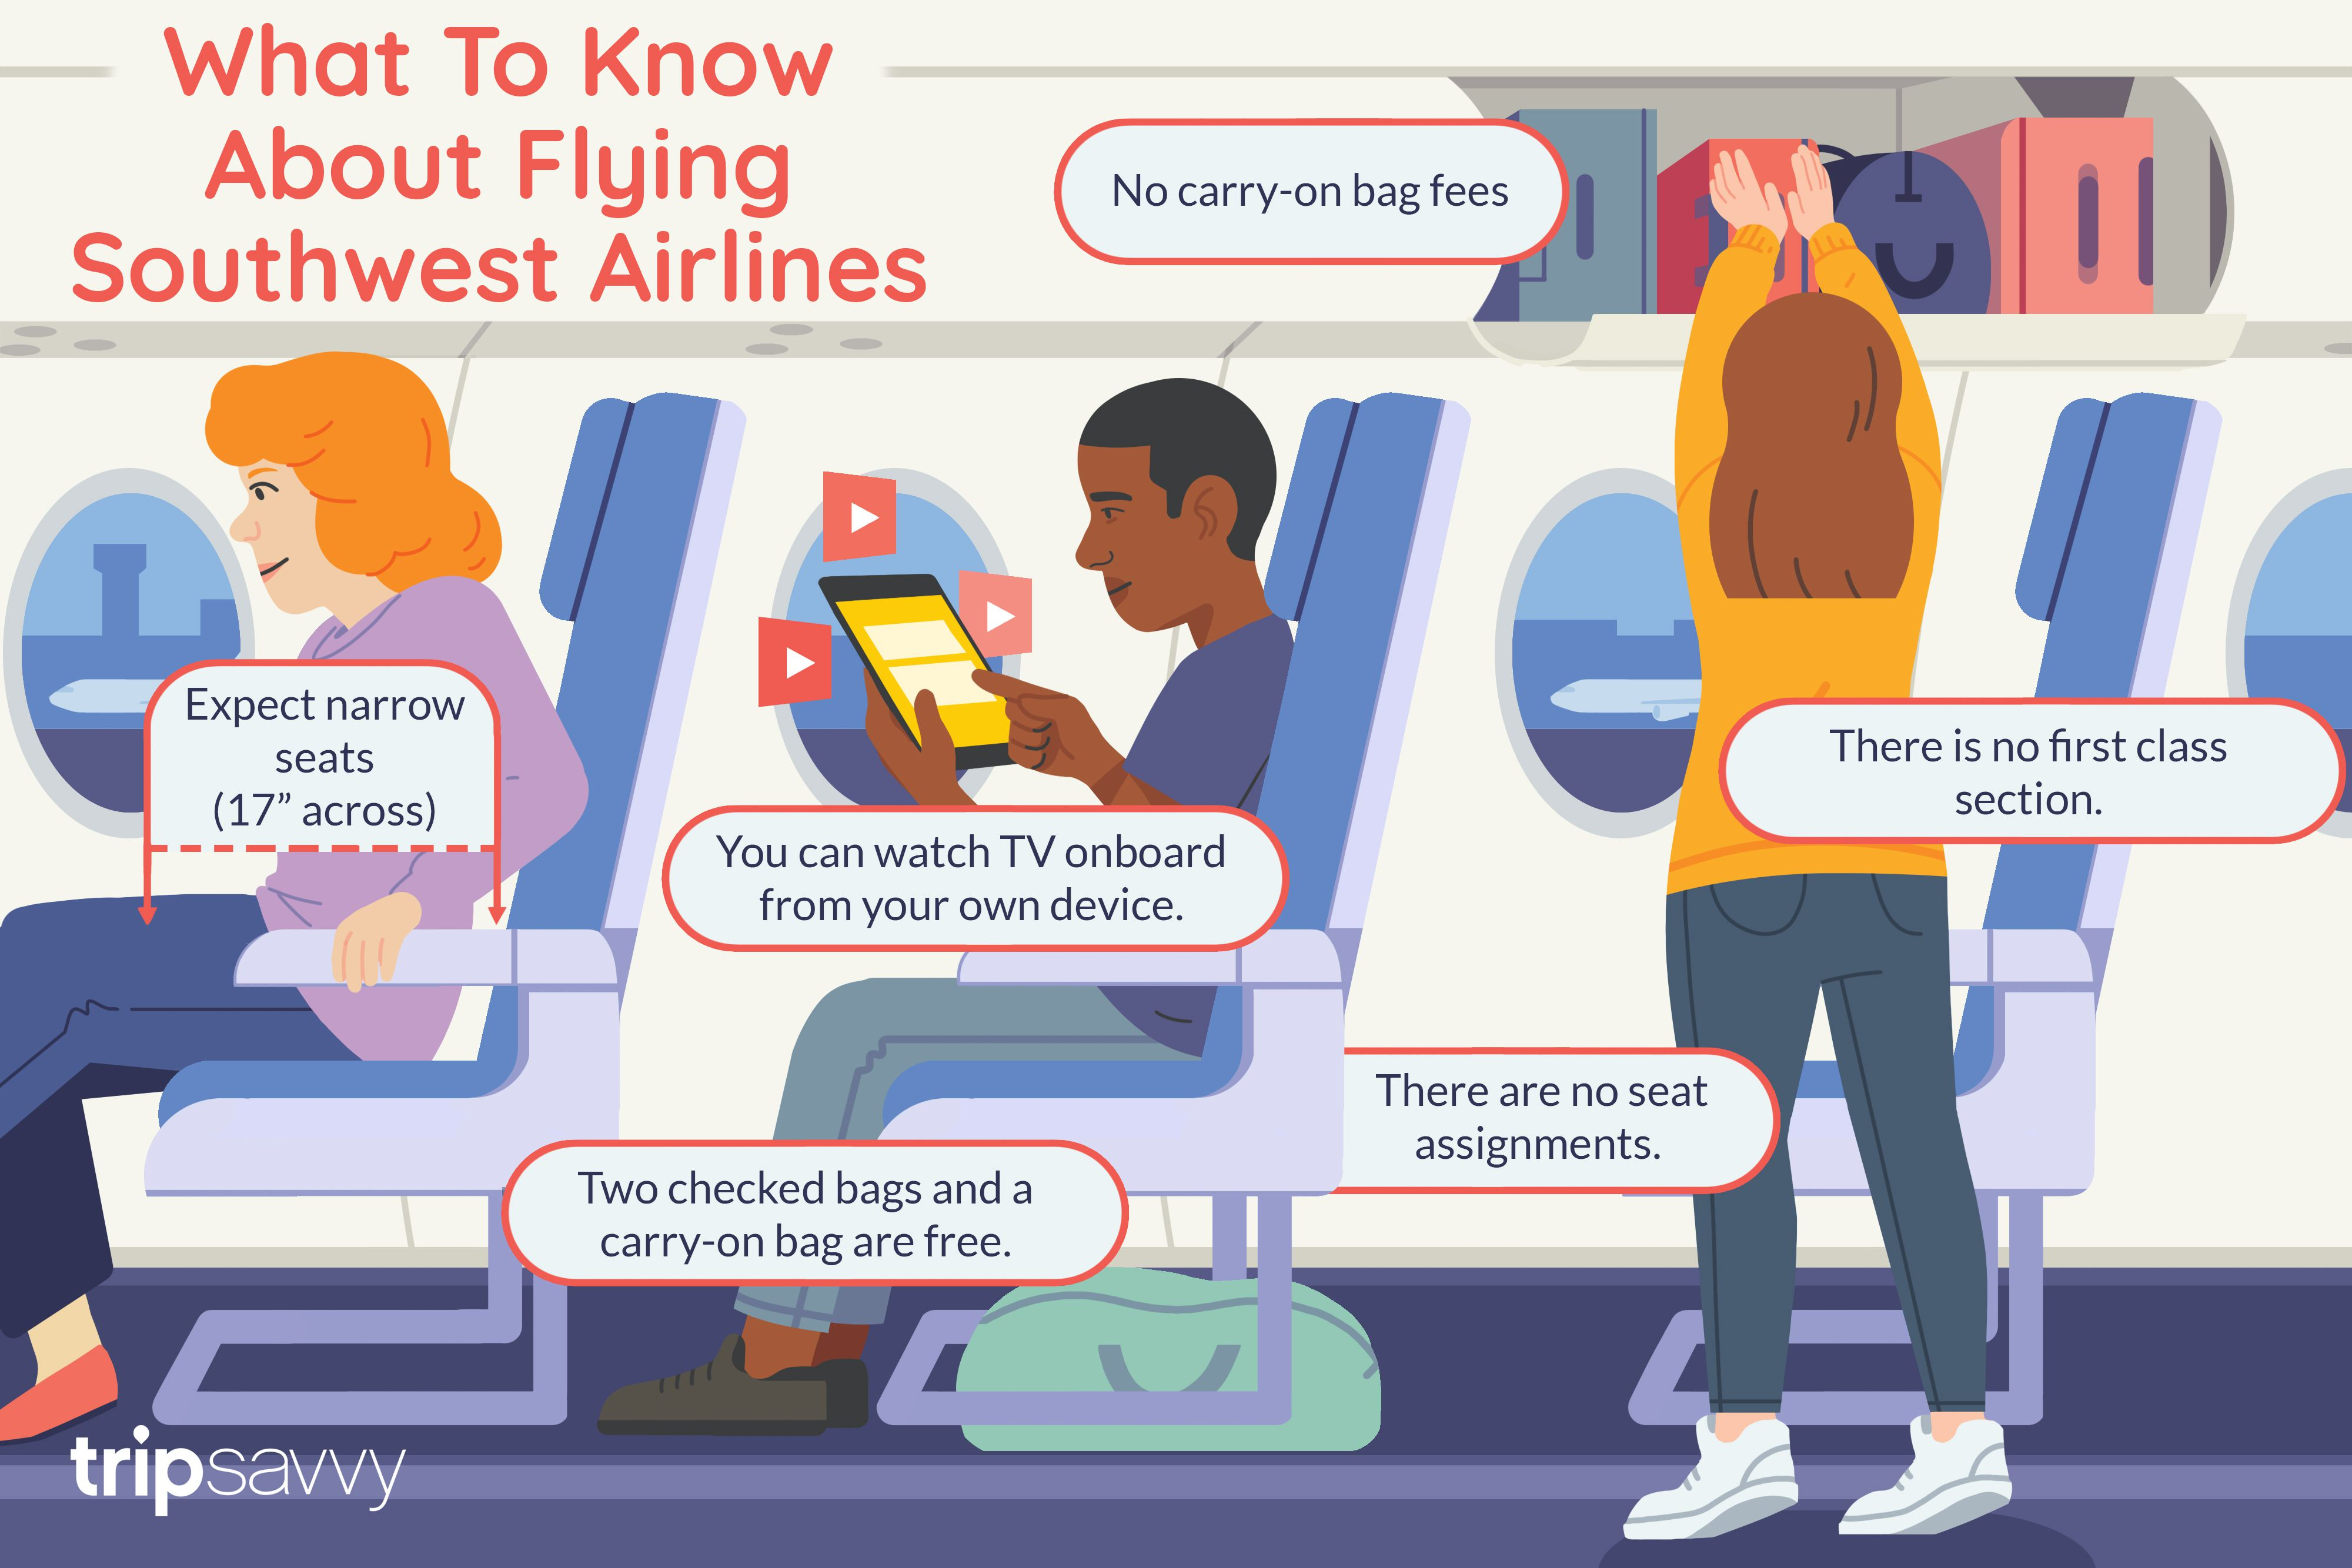 Why You Cant Go First Class On Southwest Airlines